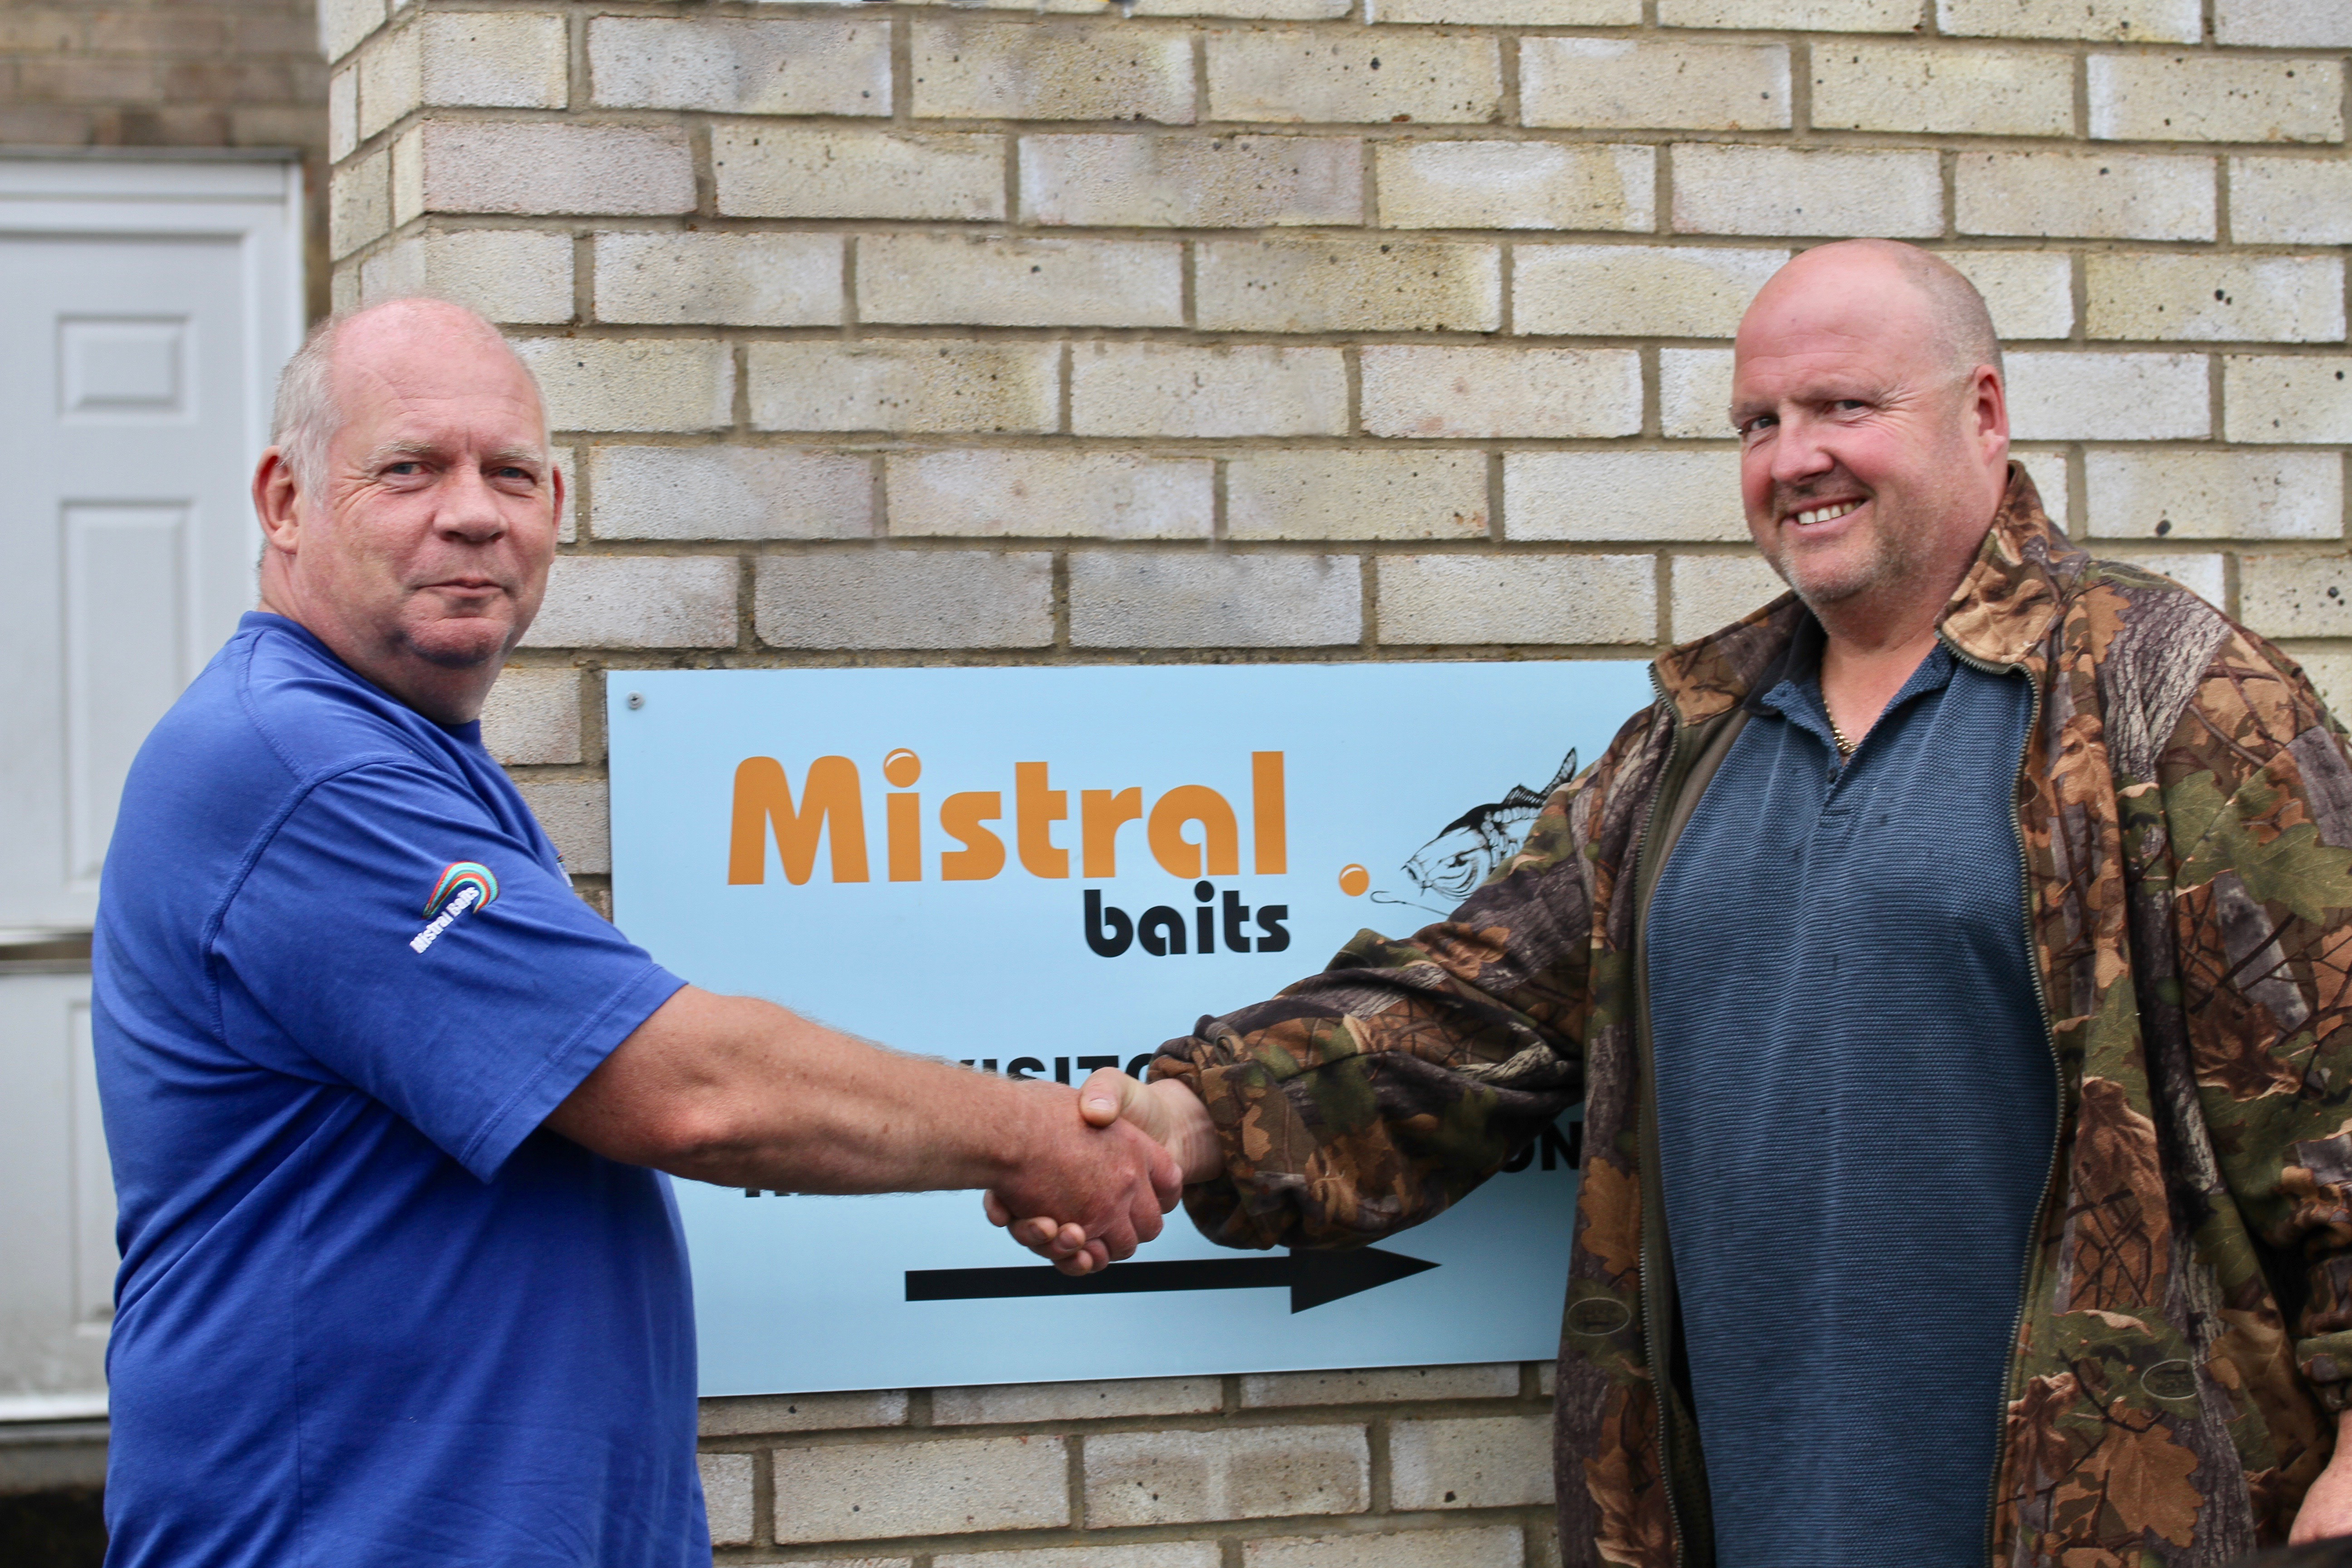 Jim Shelley (right) shakes on a deal with Allan Parbery at Mistral Baits.